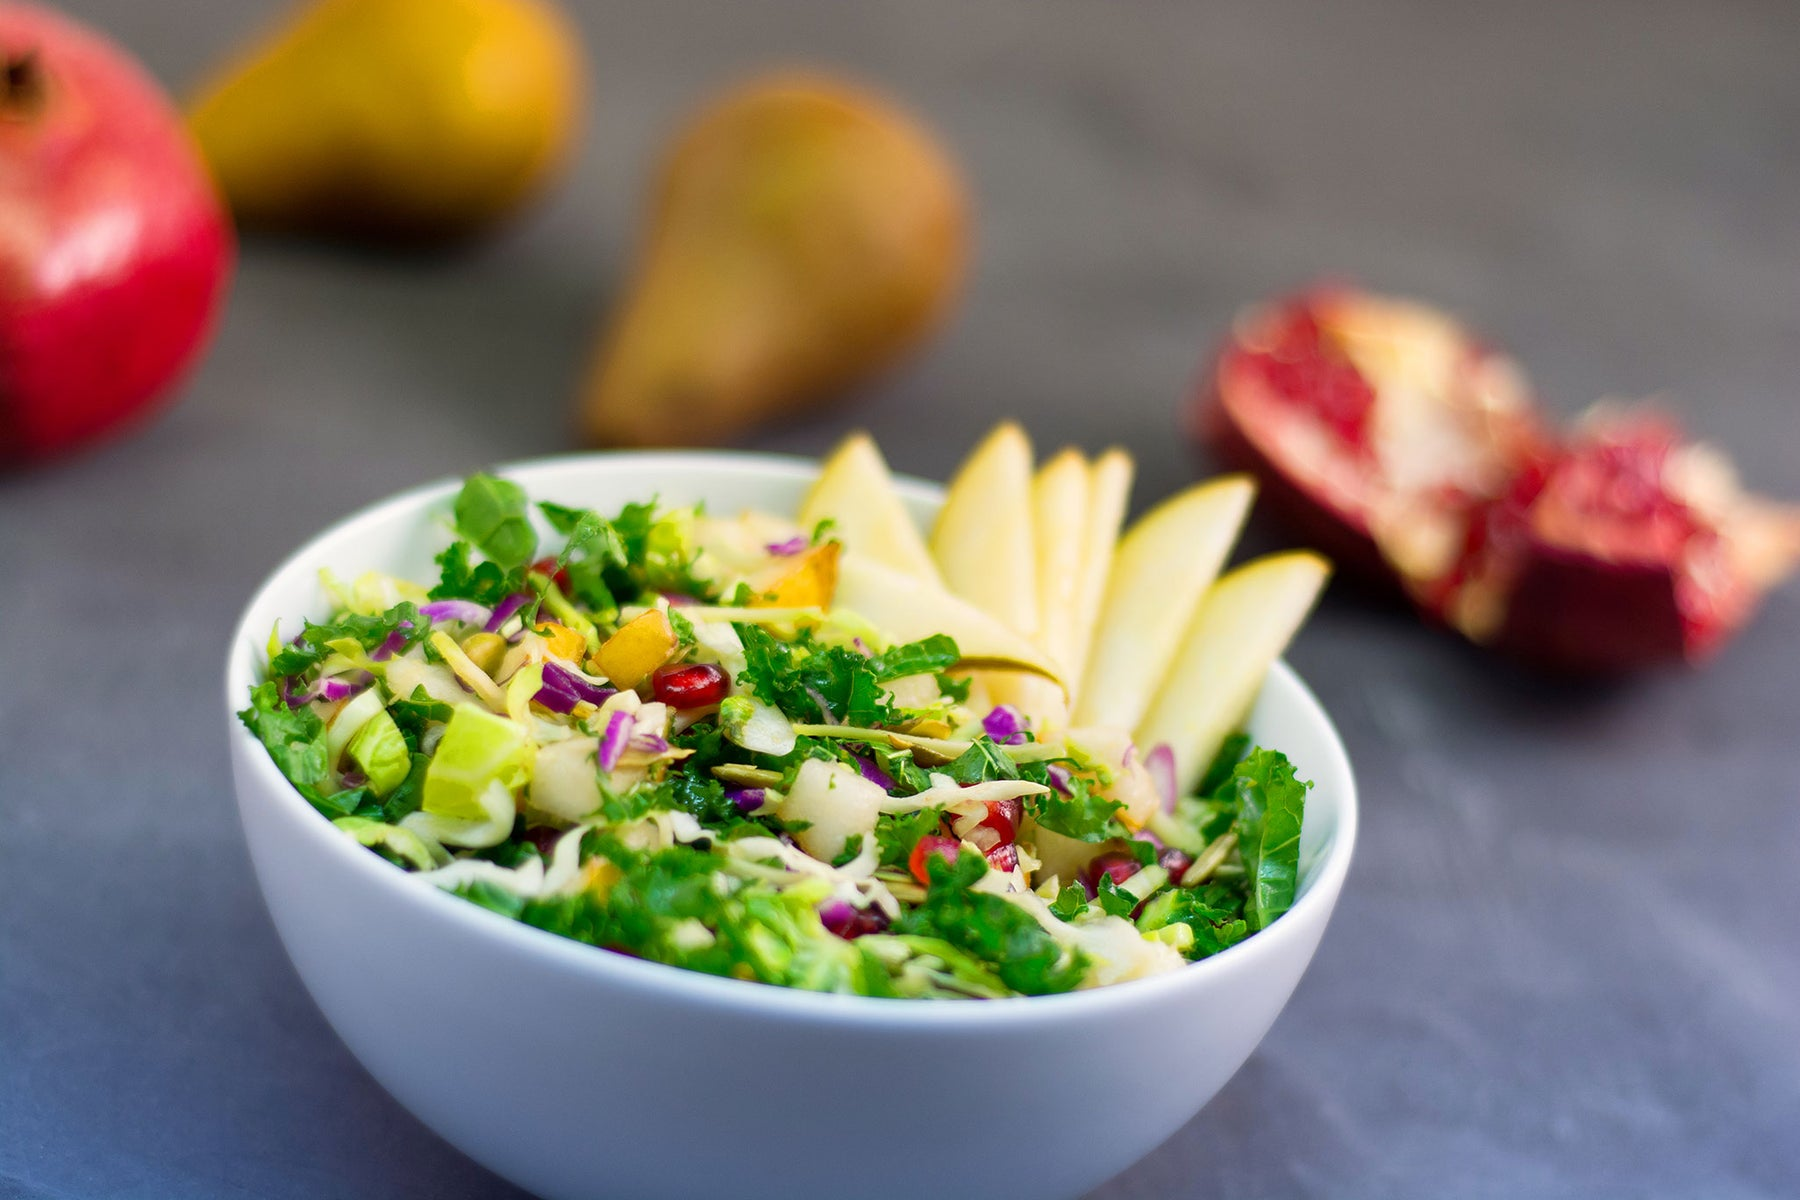 Raw Kale Avocado Salad with Apples